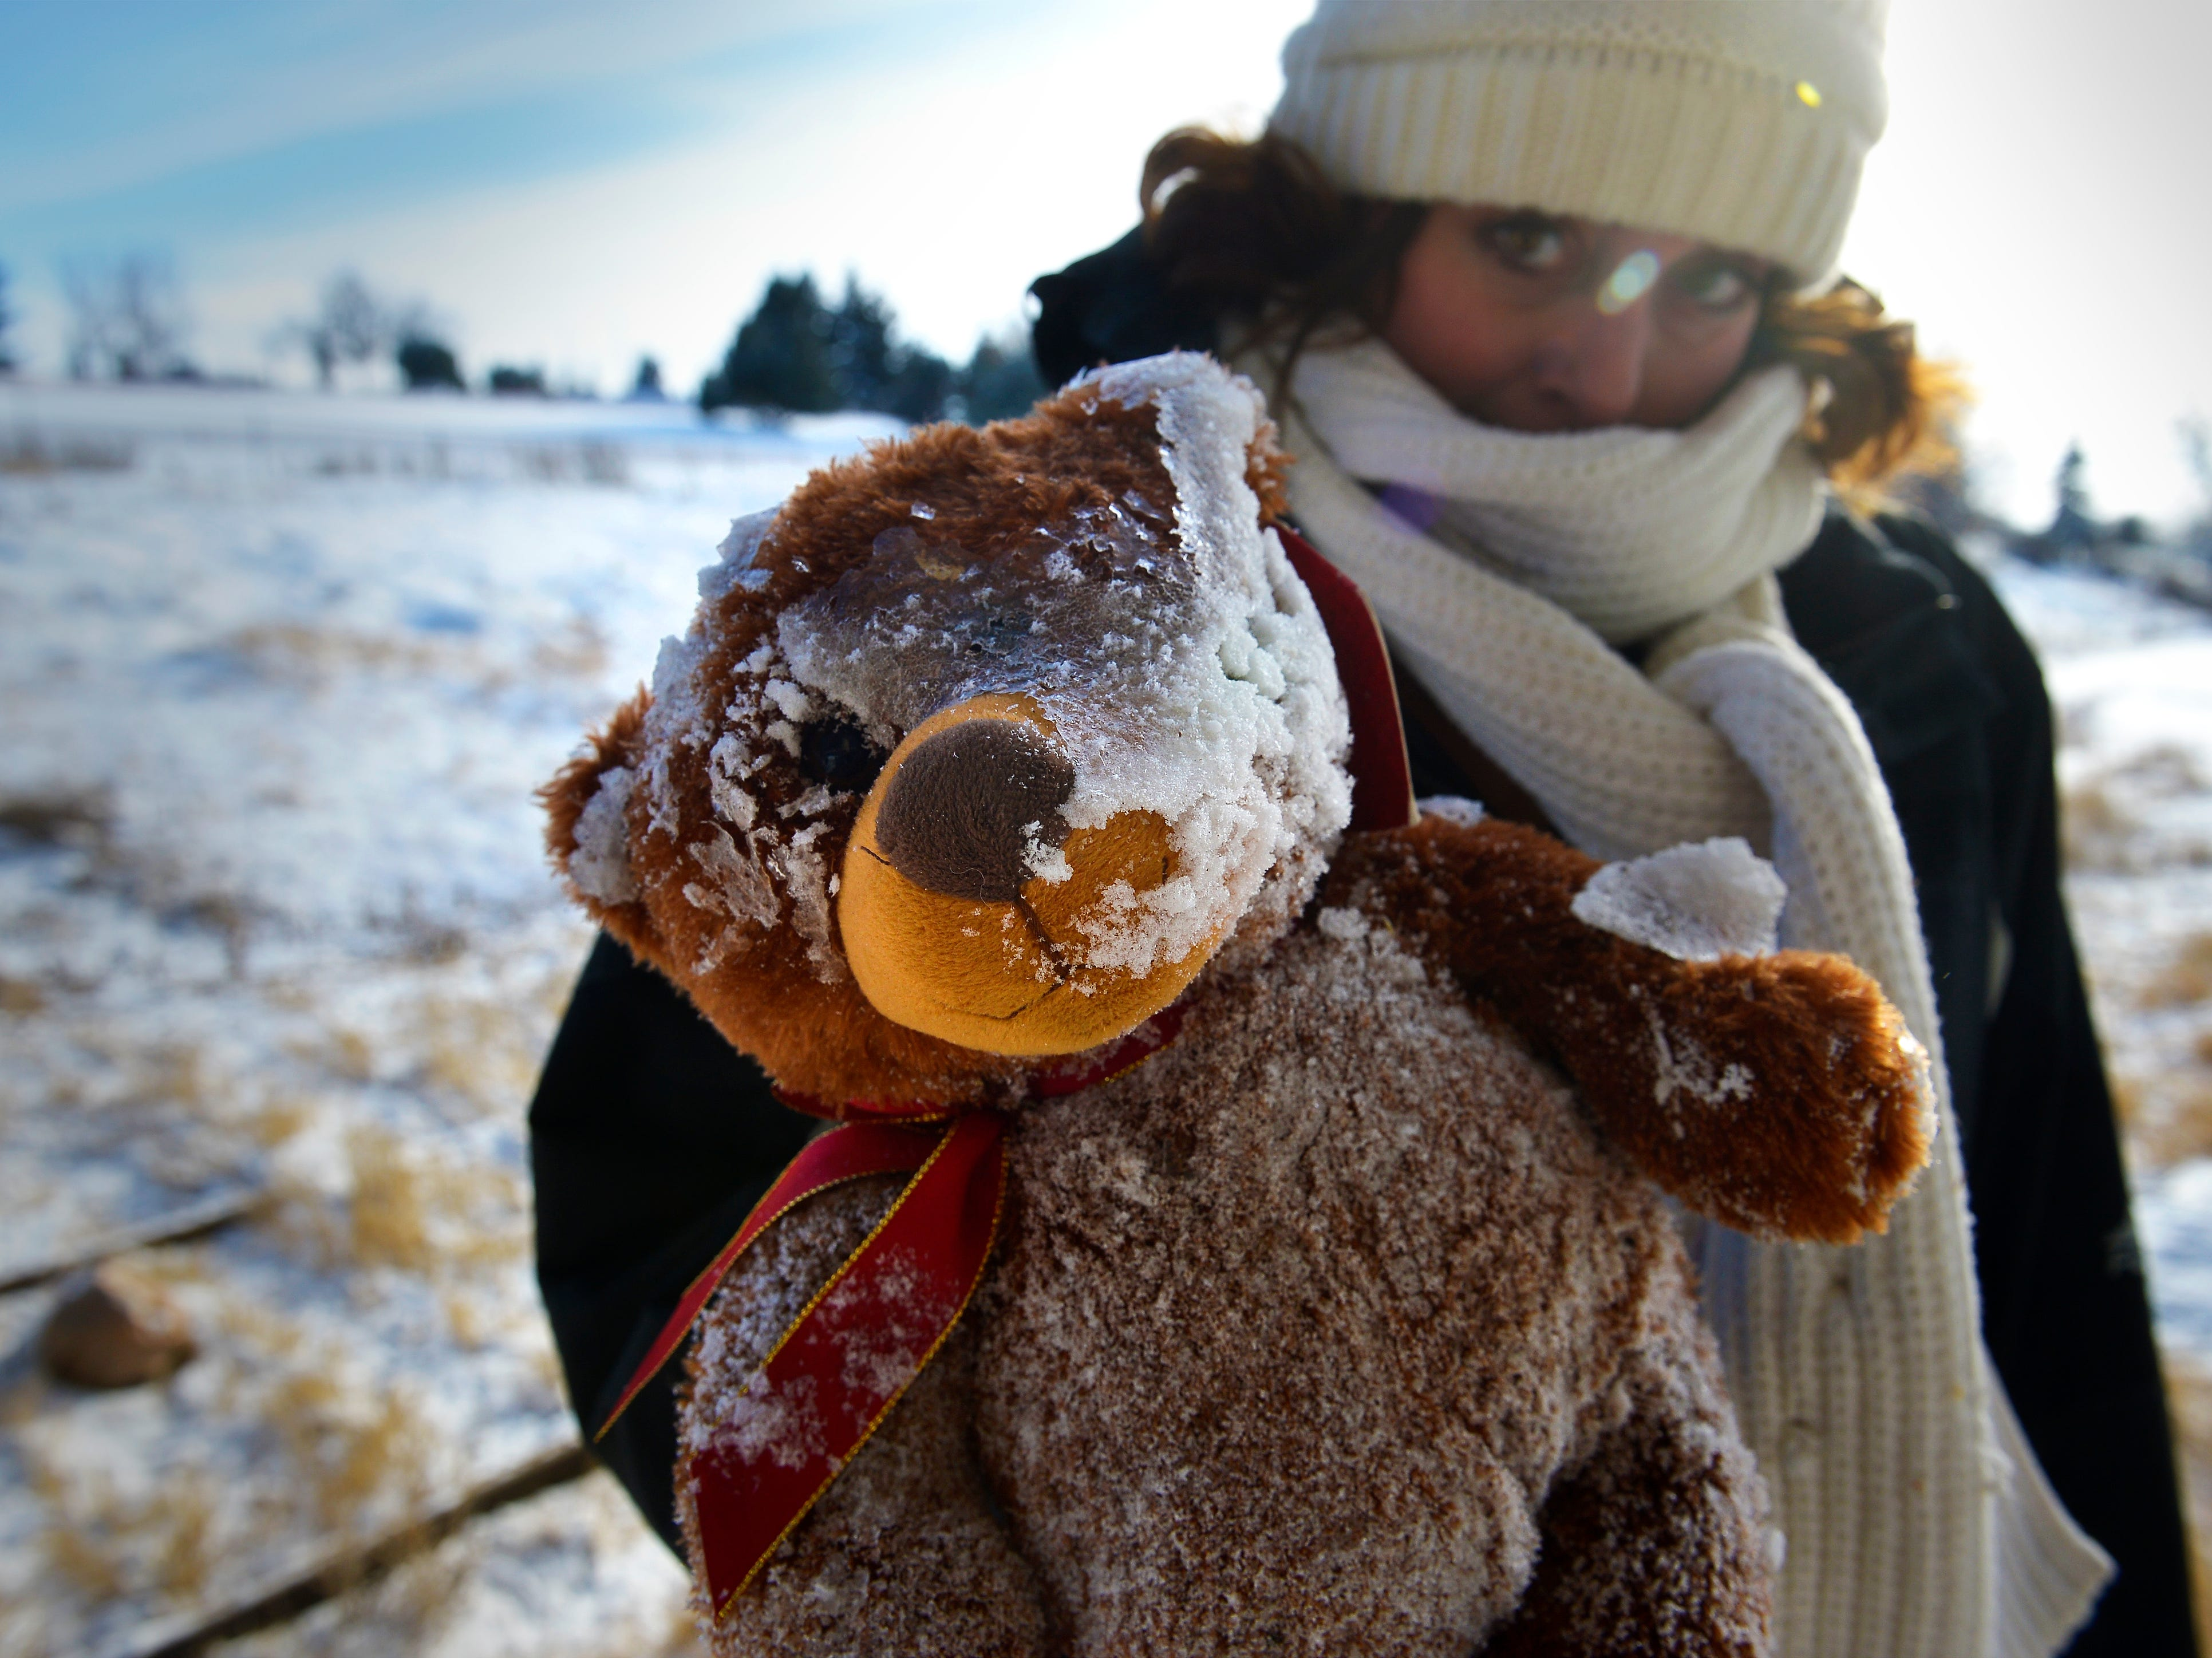 Jennifer Lehman, homeless outreach coordinator for St. Vincent de Paul, holds up a stuffed bear she believes belonged to Barbara Snider, a homeless woman who was found dead on Jan. 5 under the 10th Avenue South overpass.  Many of Barbara's belongings remained beneath the underpass over a month after her passing.